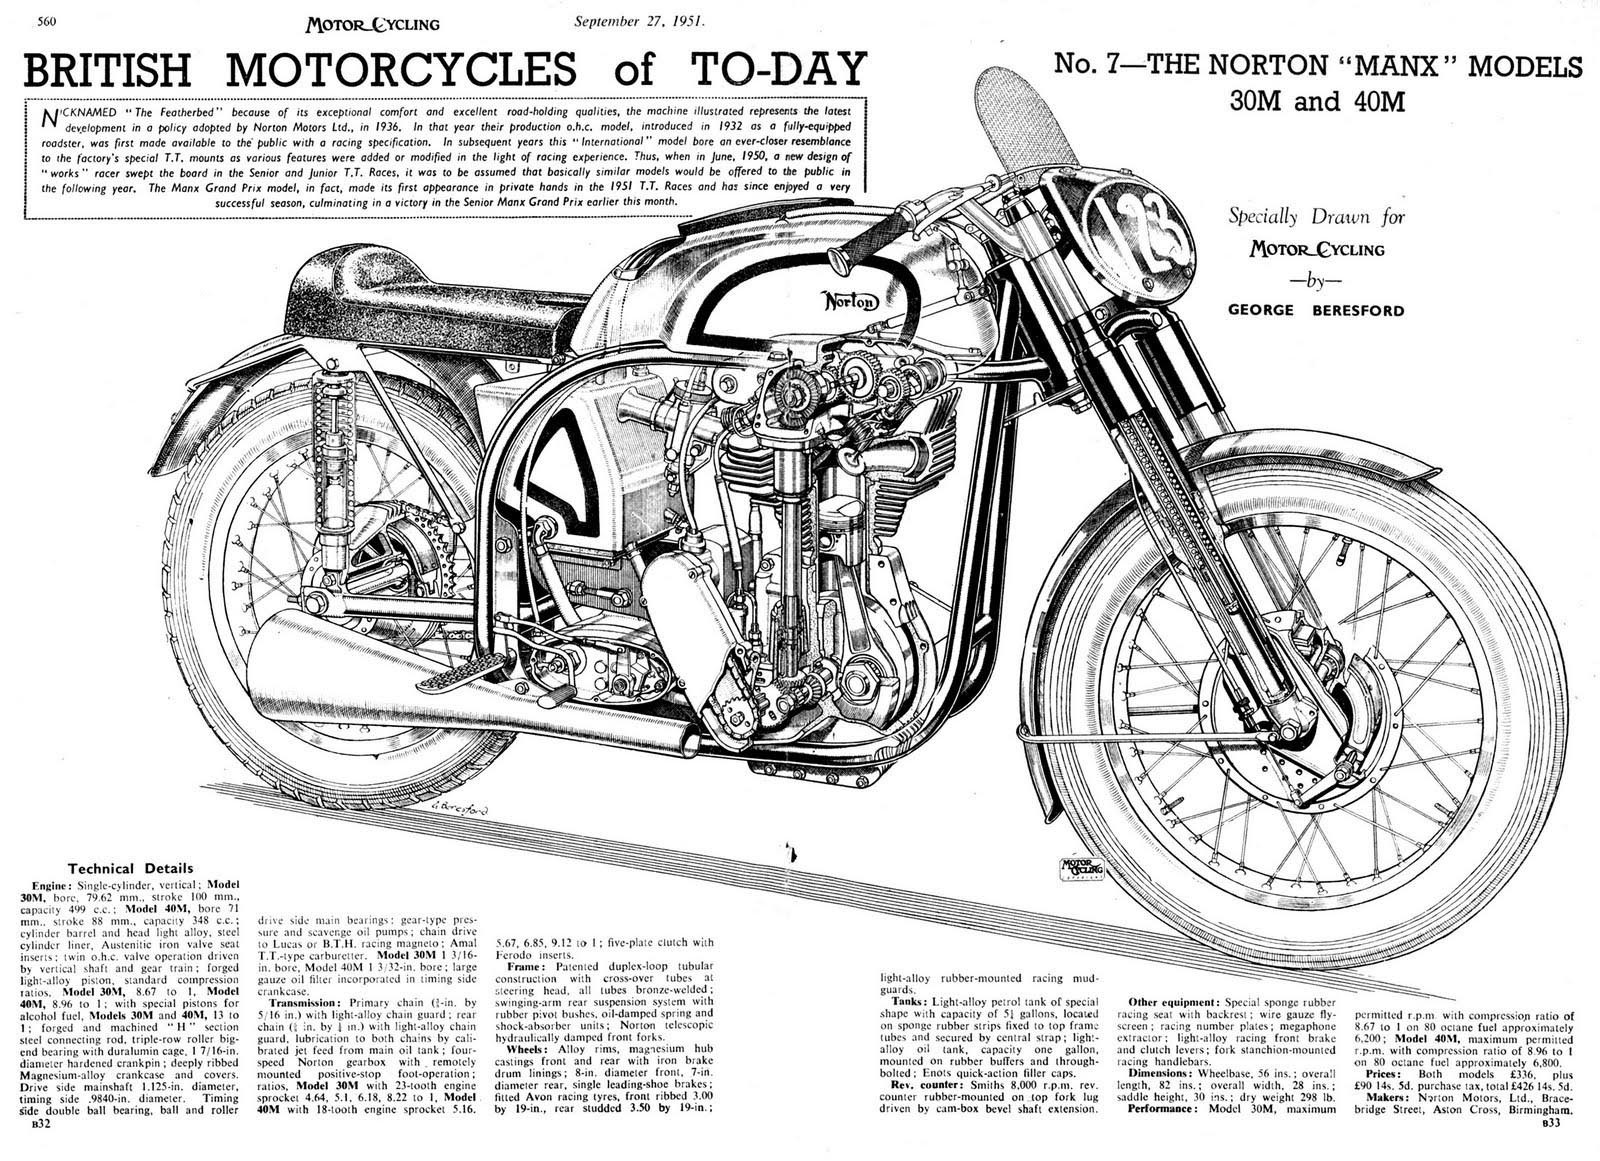 The Norton Manx Models 30m And 40m British Motorcycles Of Today Diagram